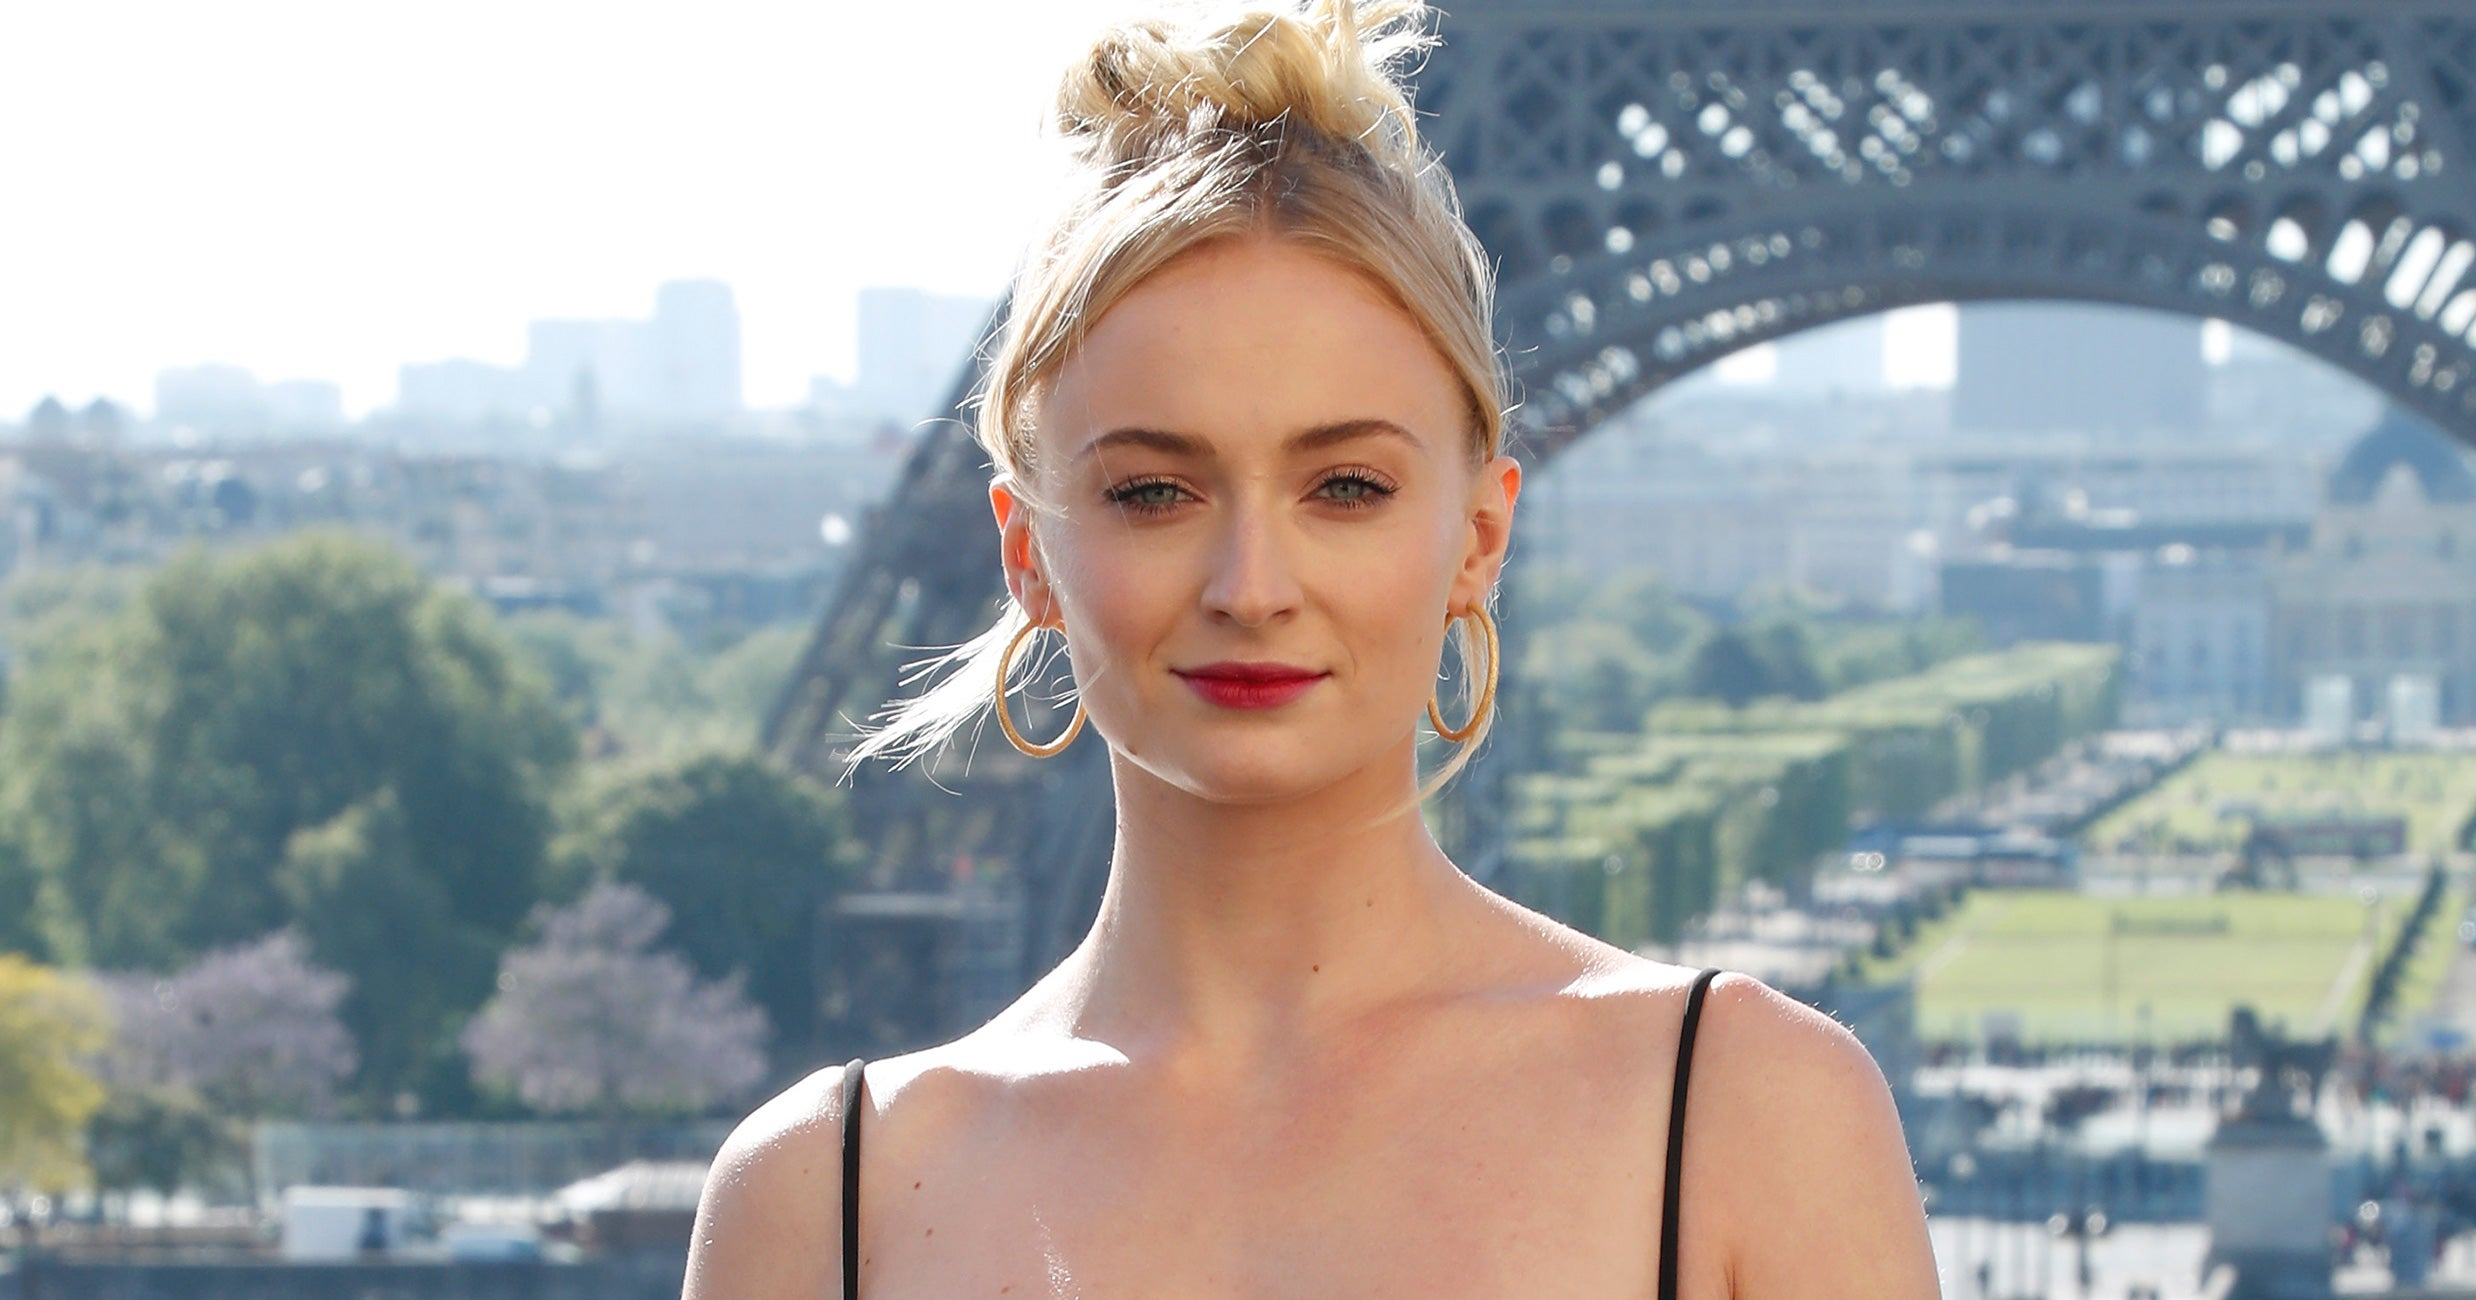 10515999 Sophie Turner Wore Designer Gym Shorts With This Summer s Top Bikini Style 8211 Refinery29